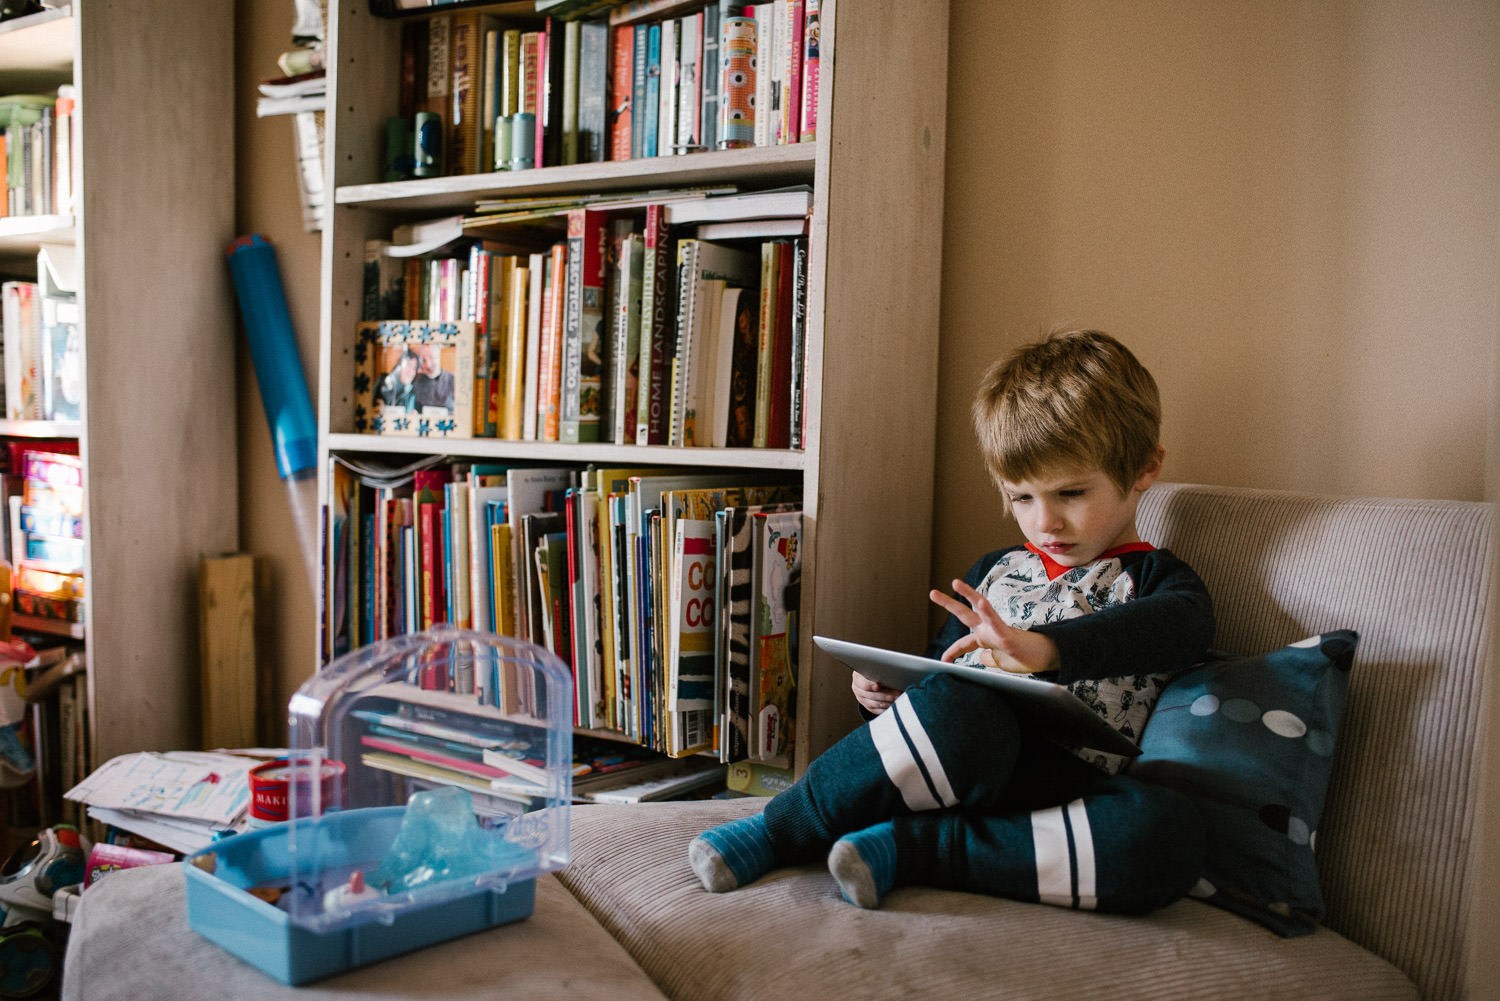 A little boy plays with a tablet in a living room.